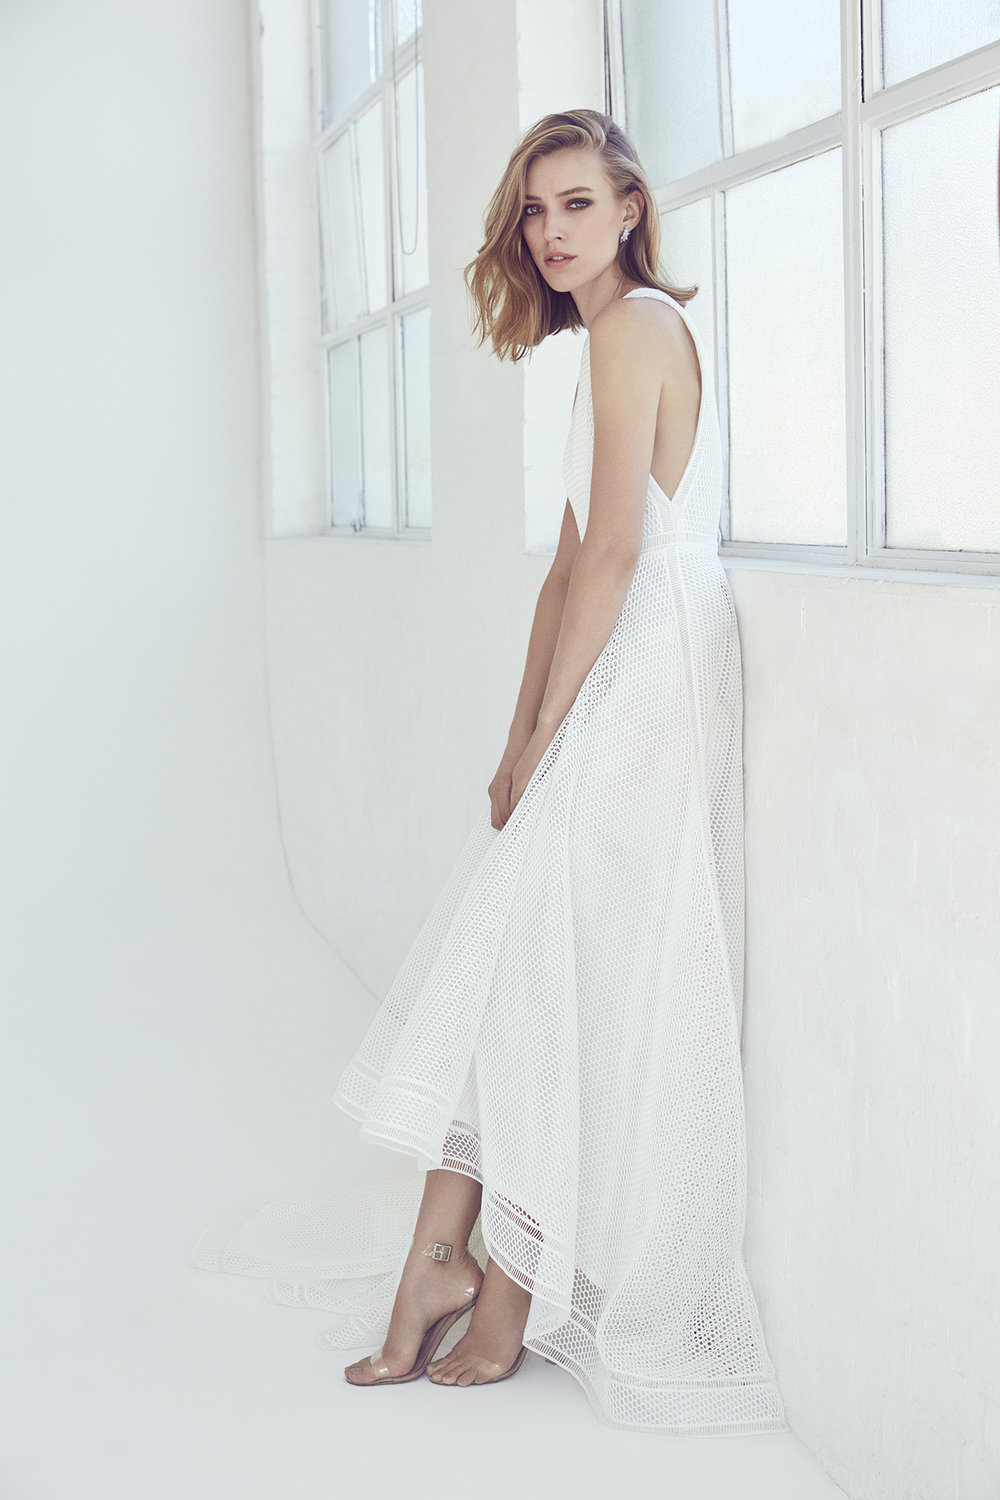 Comet Gown by Suzanne Harward | LOVE FIND CO.